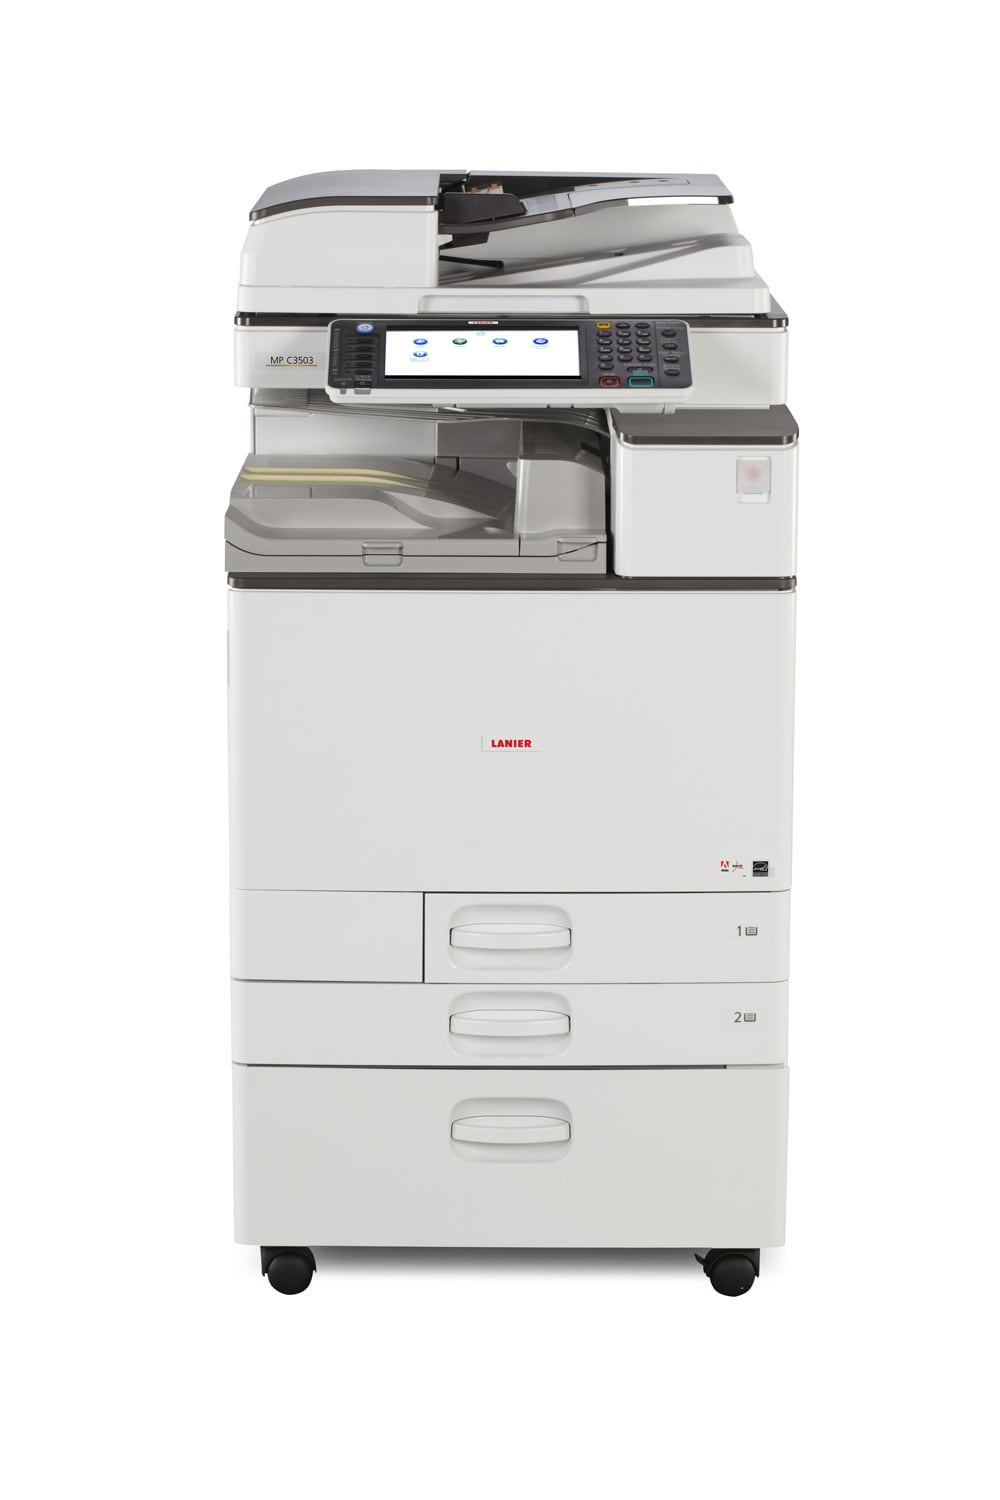 Lanier MPC3003 colour multifunction printer